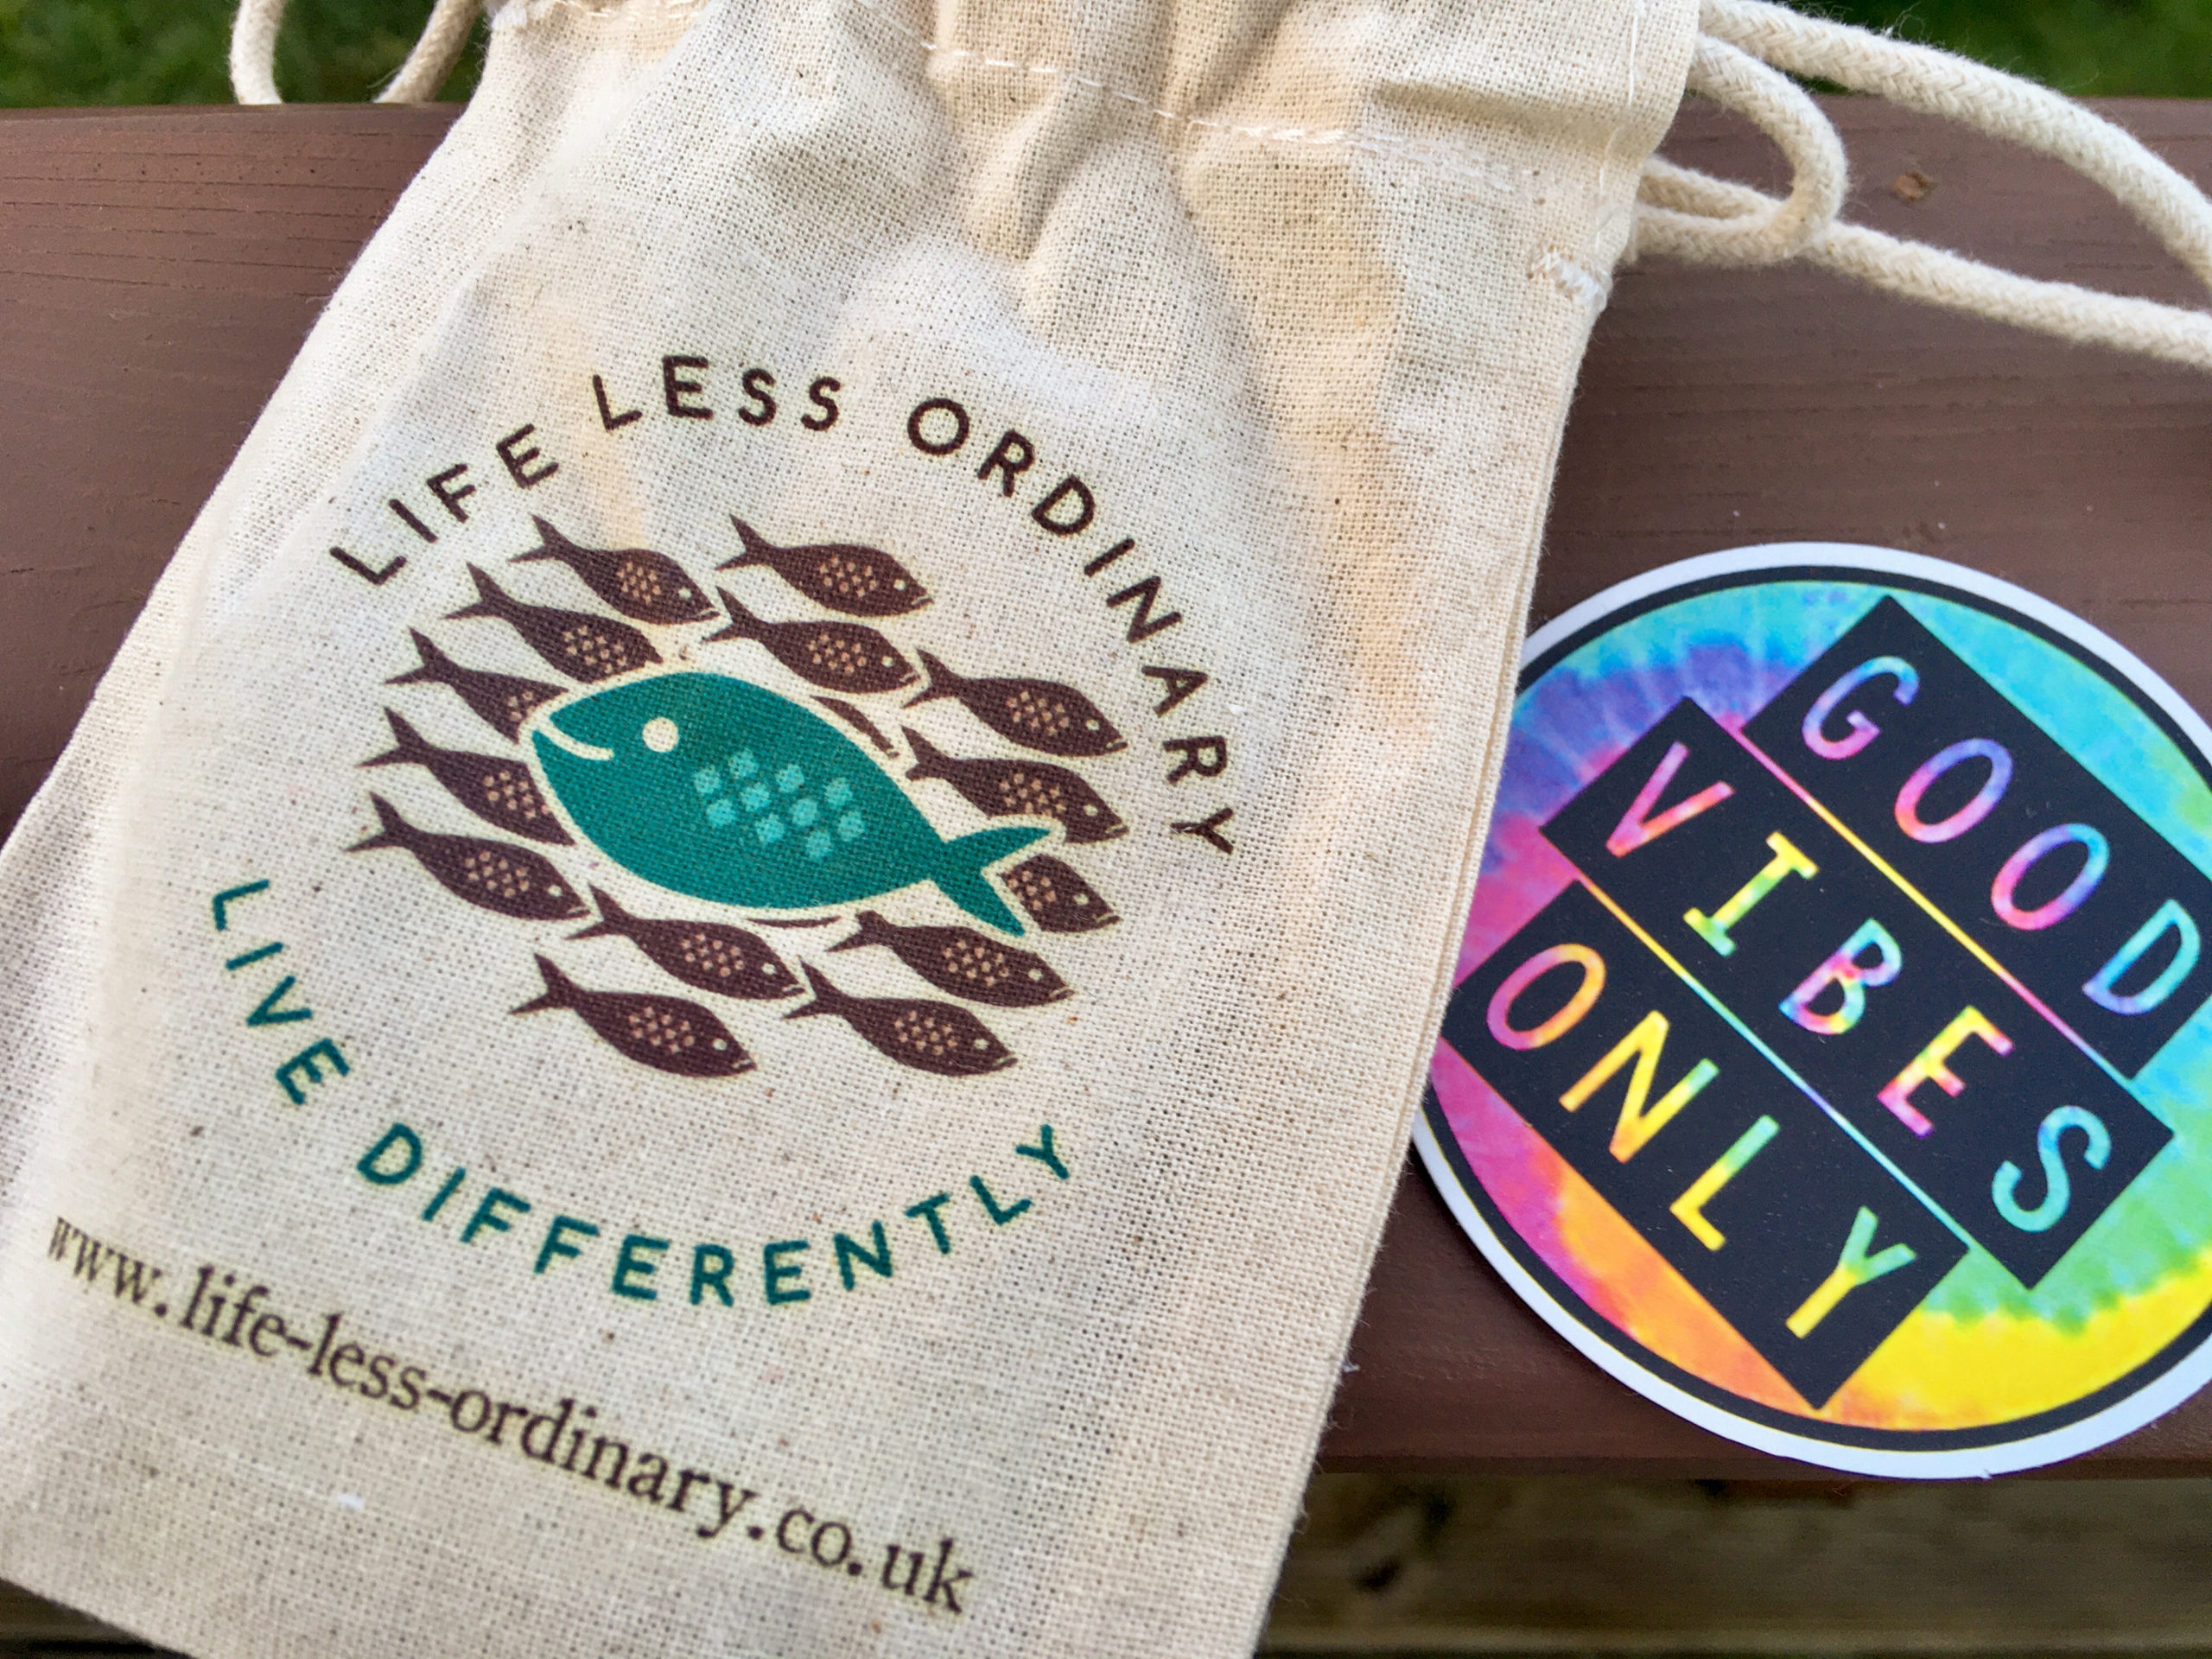 Life less ordinary canvas bag that the handwriting bracelets arrived in